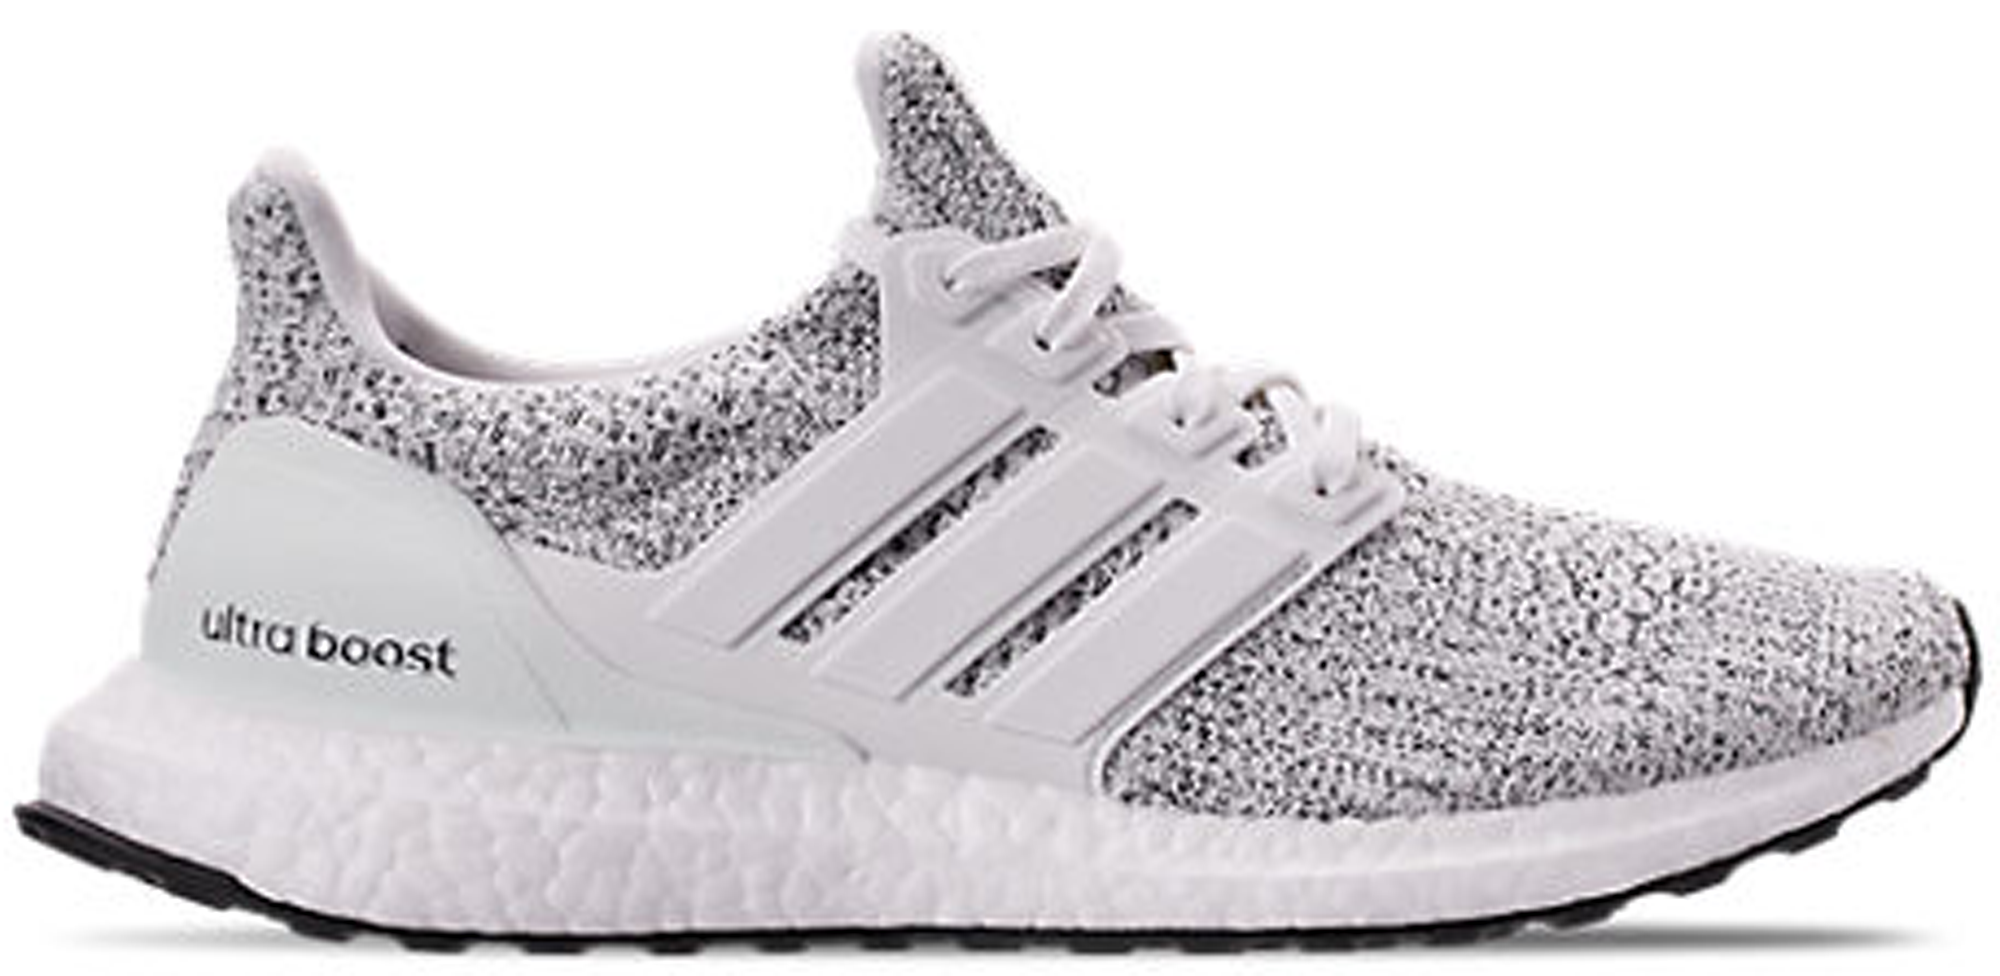 save off 3d72f 4d654 Ultra Boost 4.0 Non Dye Cloud White (Sample) in Non Dyed/Cloud White/Grey